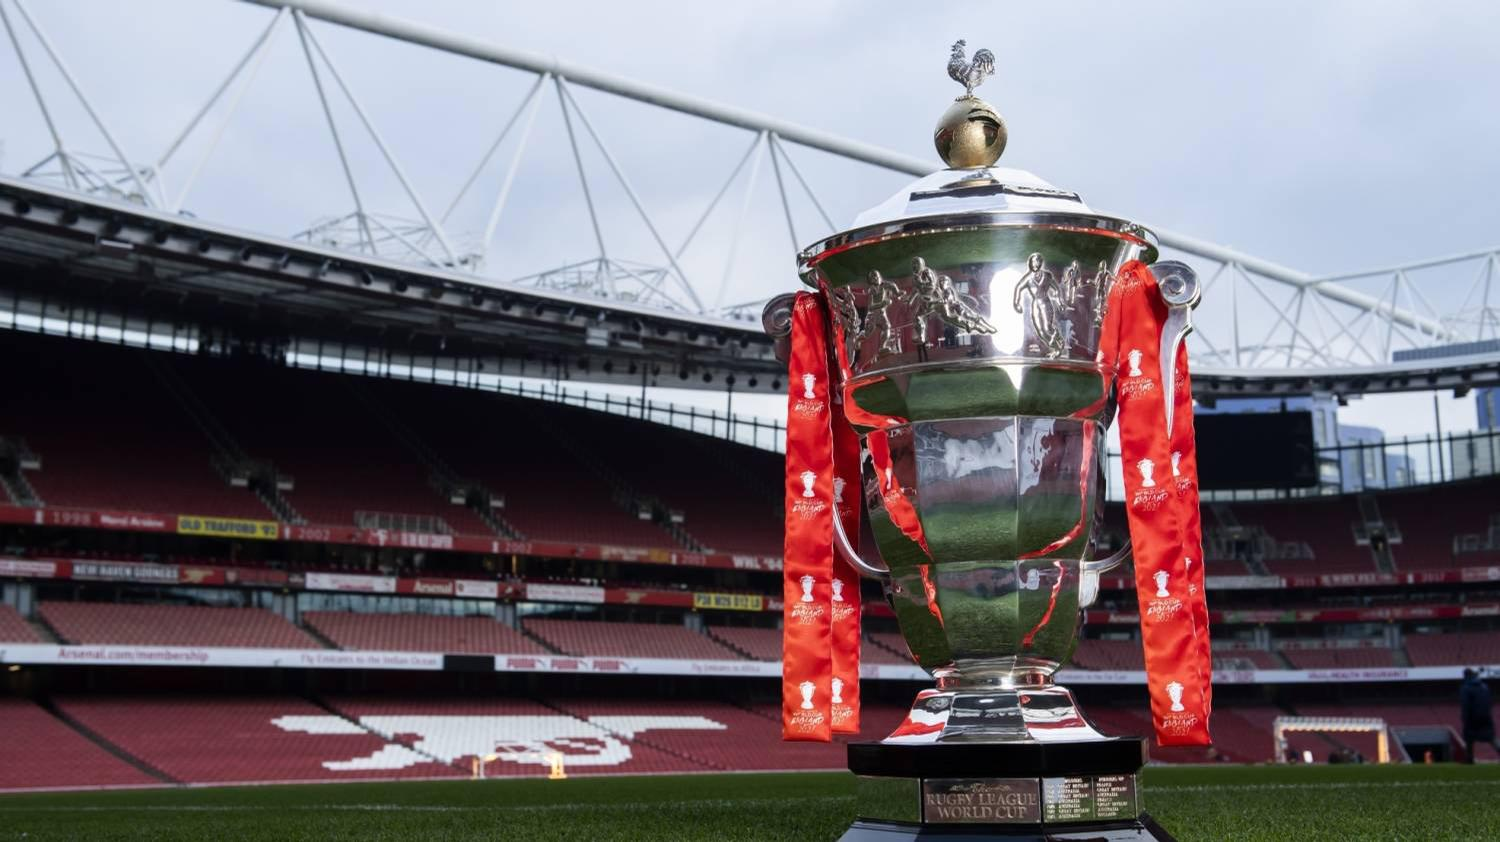 The Emirates Stadium will host a men's semi-final, making rugby league the only sport other than football to have been played at the home of Arsenal FC